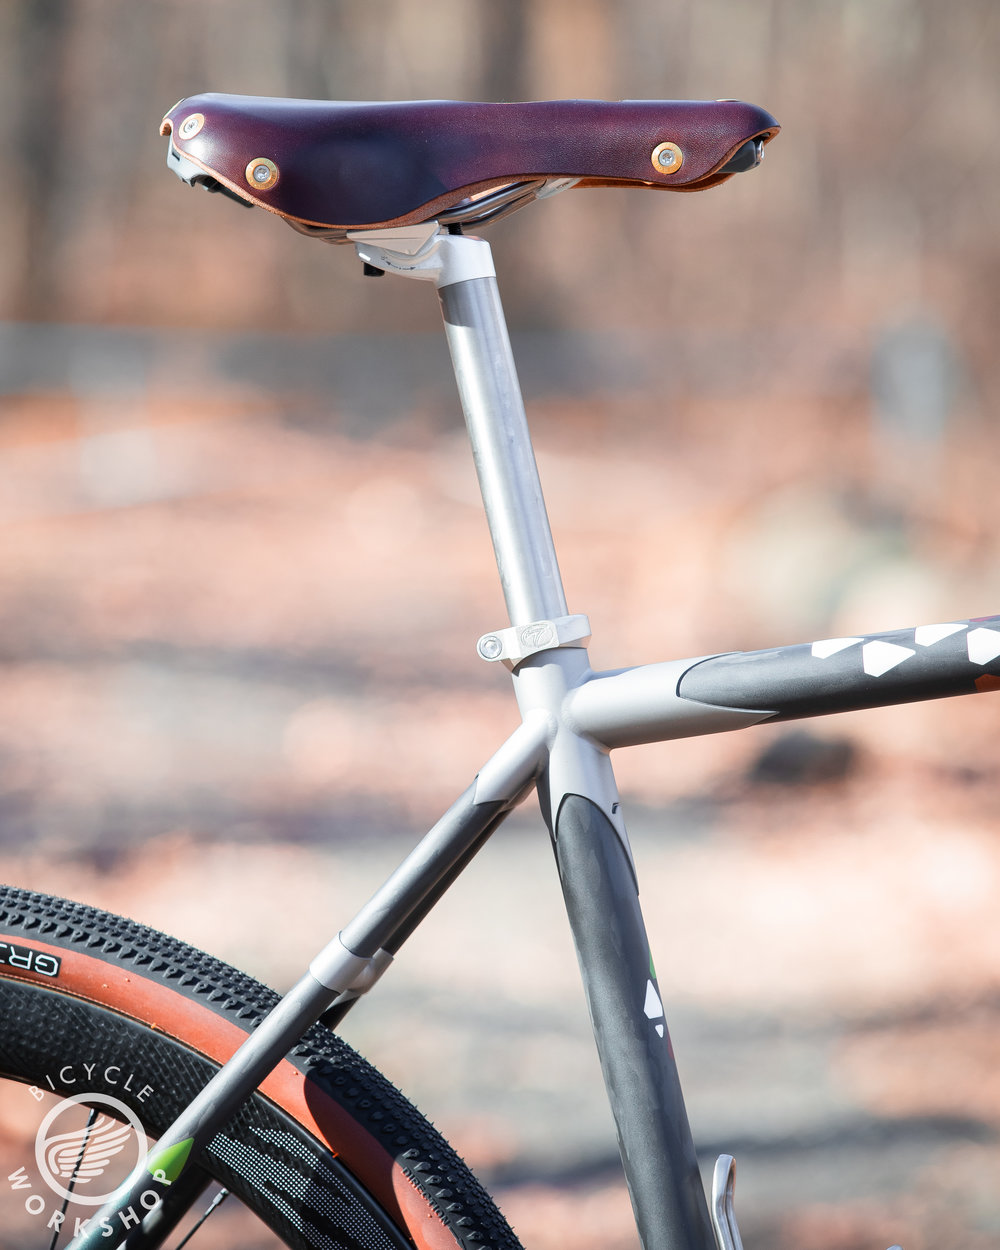 The Berthoud saddle is comfy and elegant